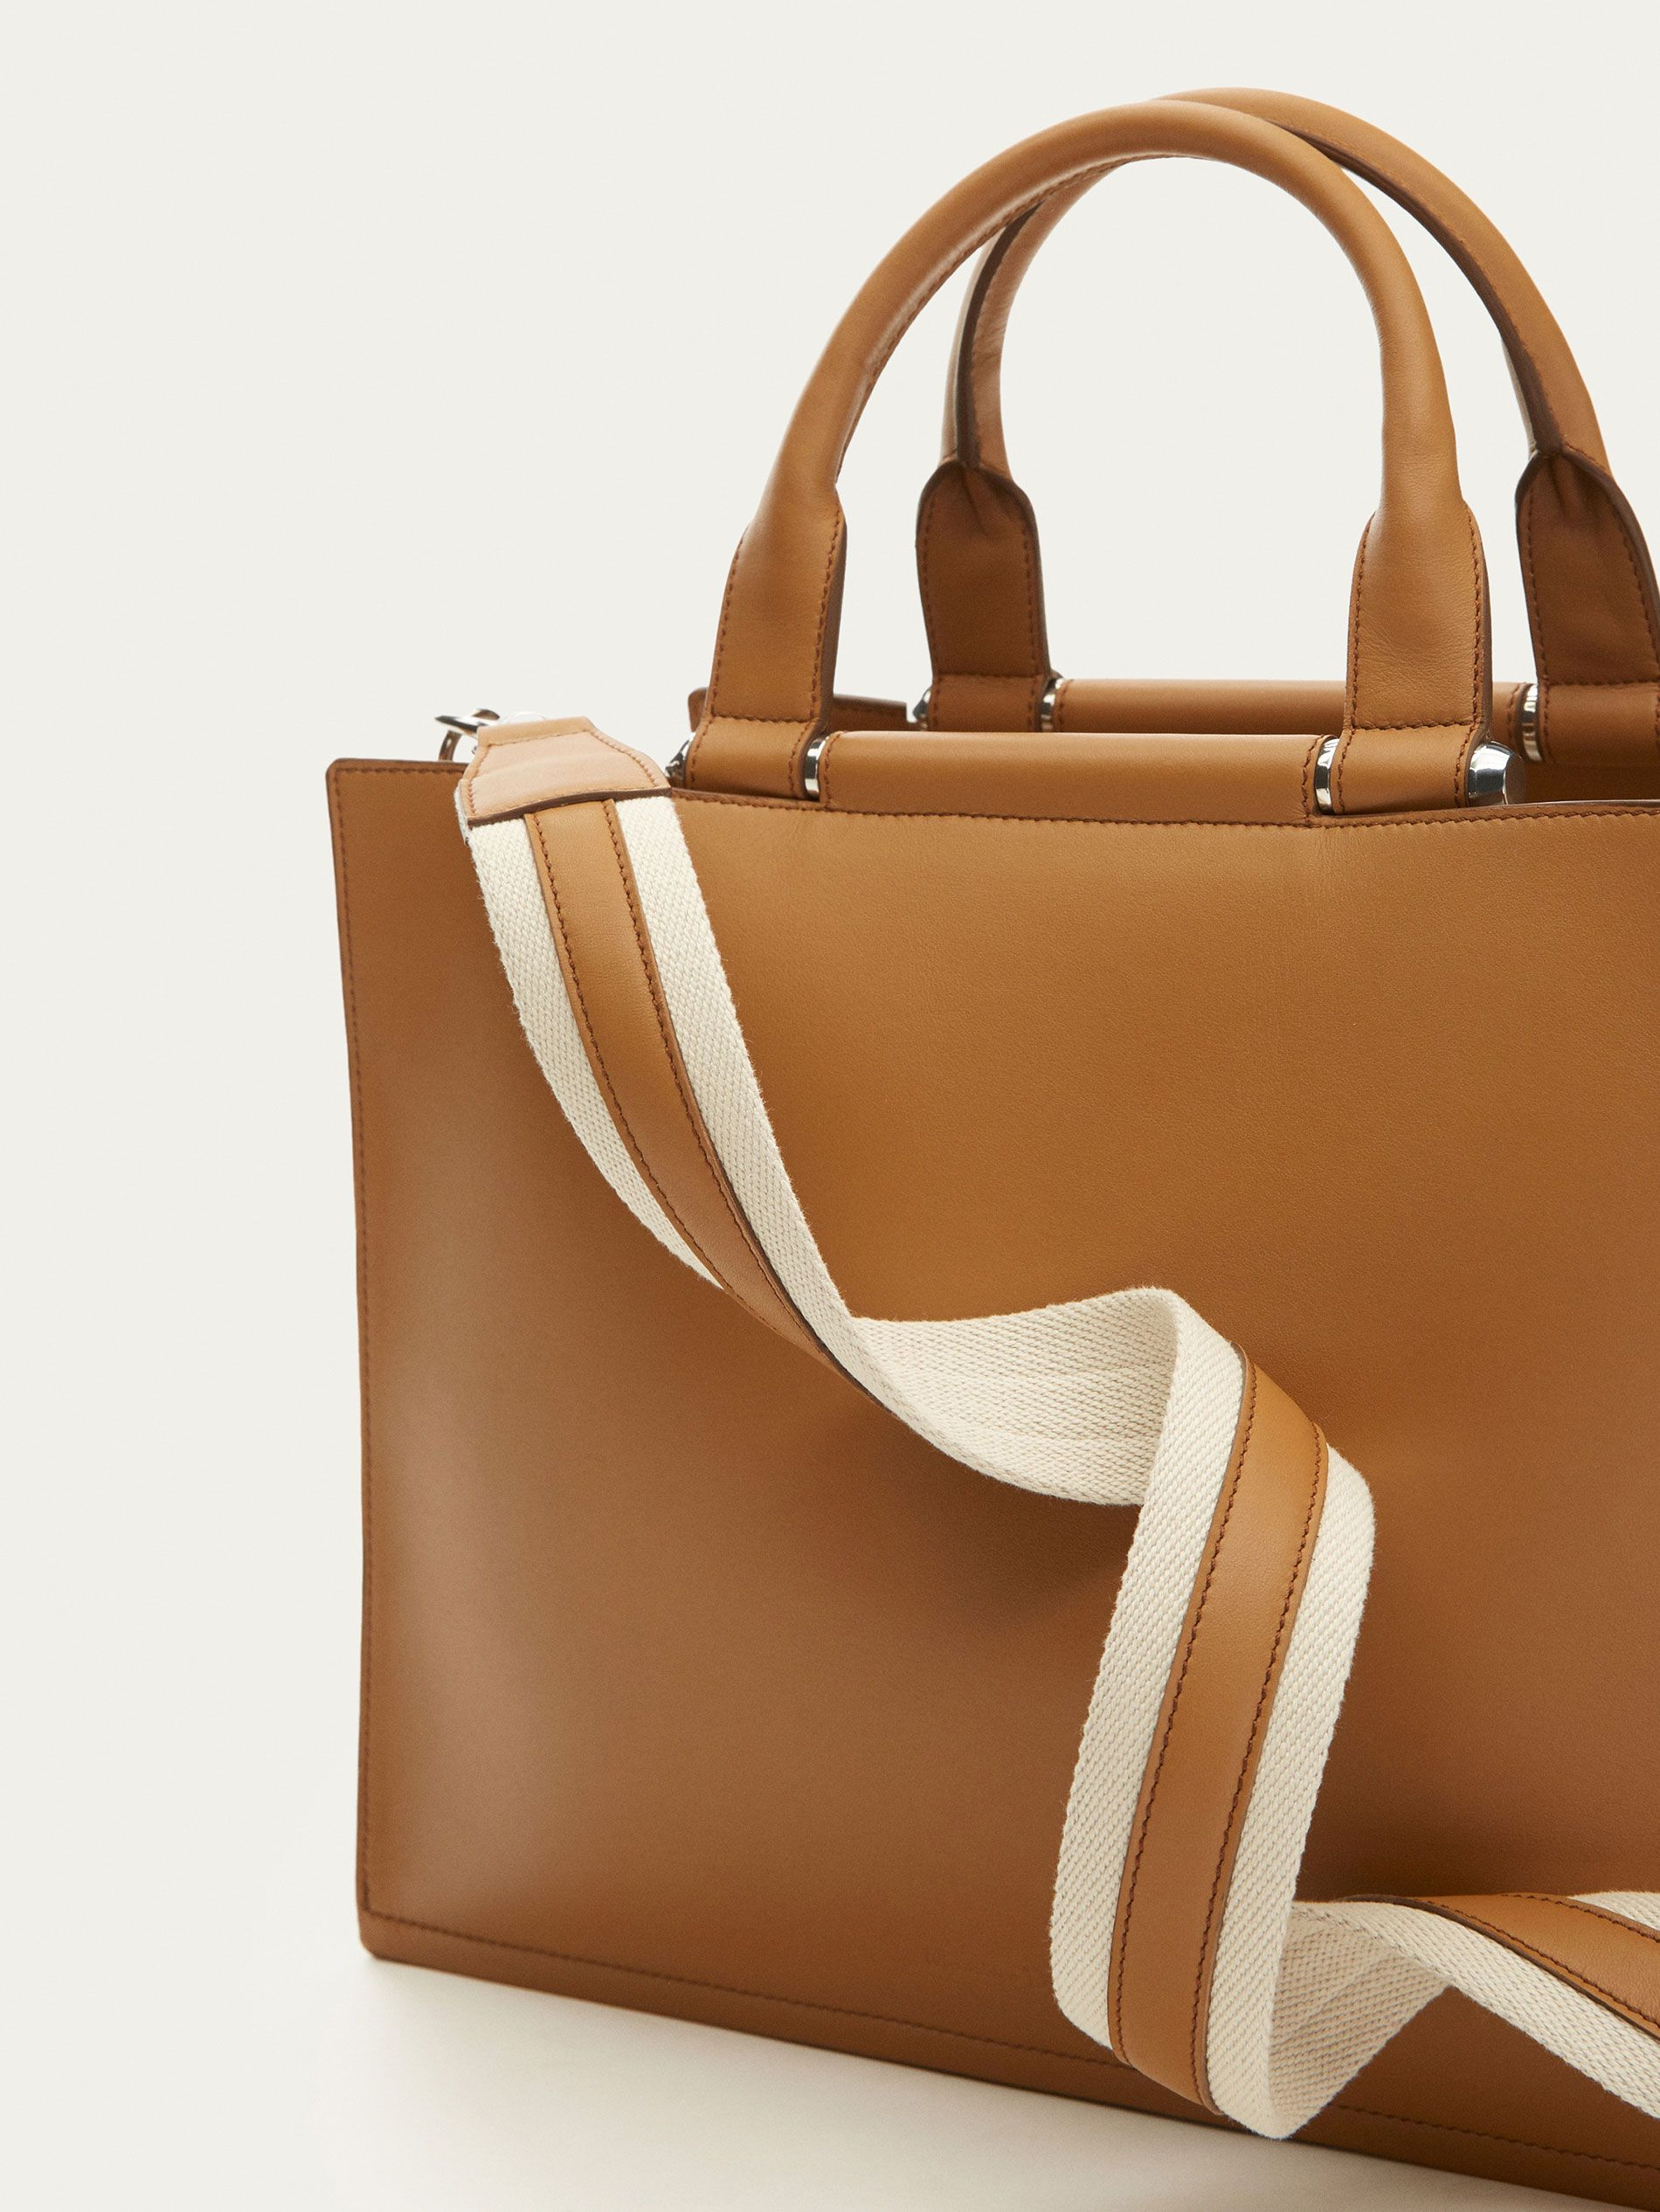 3007ae4f8d Fall Winter 2017 Women´s LEATHER TOTE BAG WITH METAL DETAILS at Massimo  Dutti